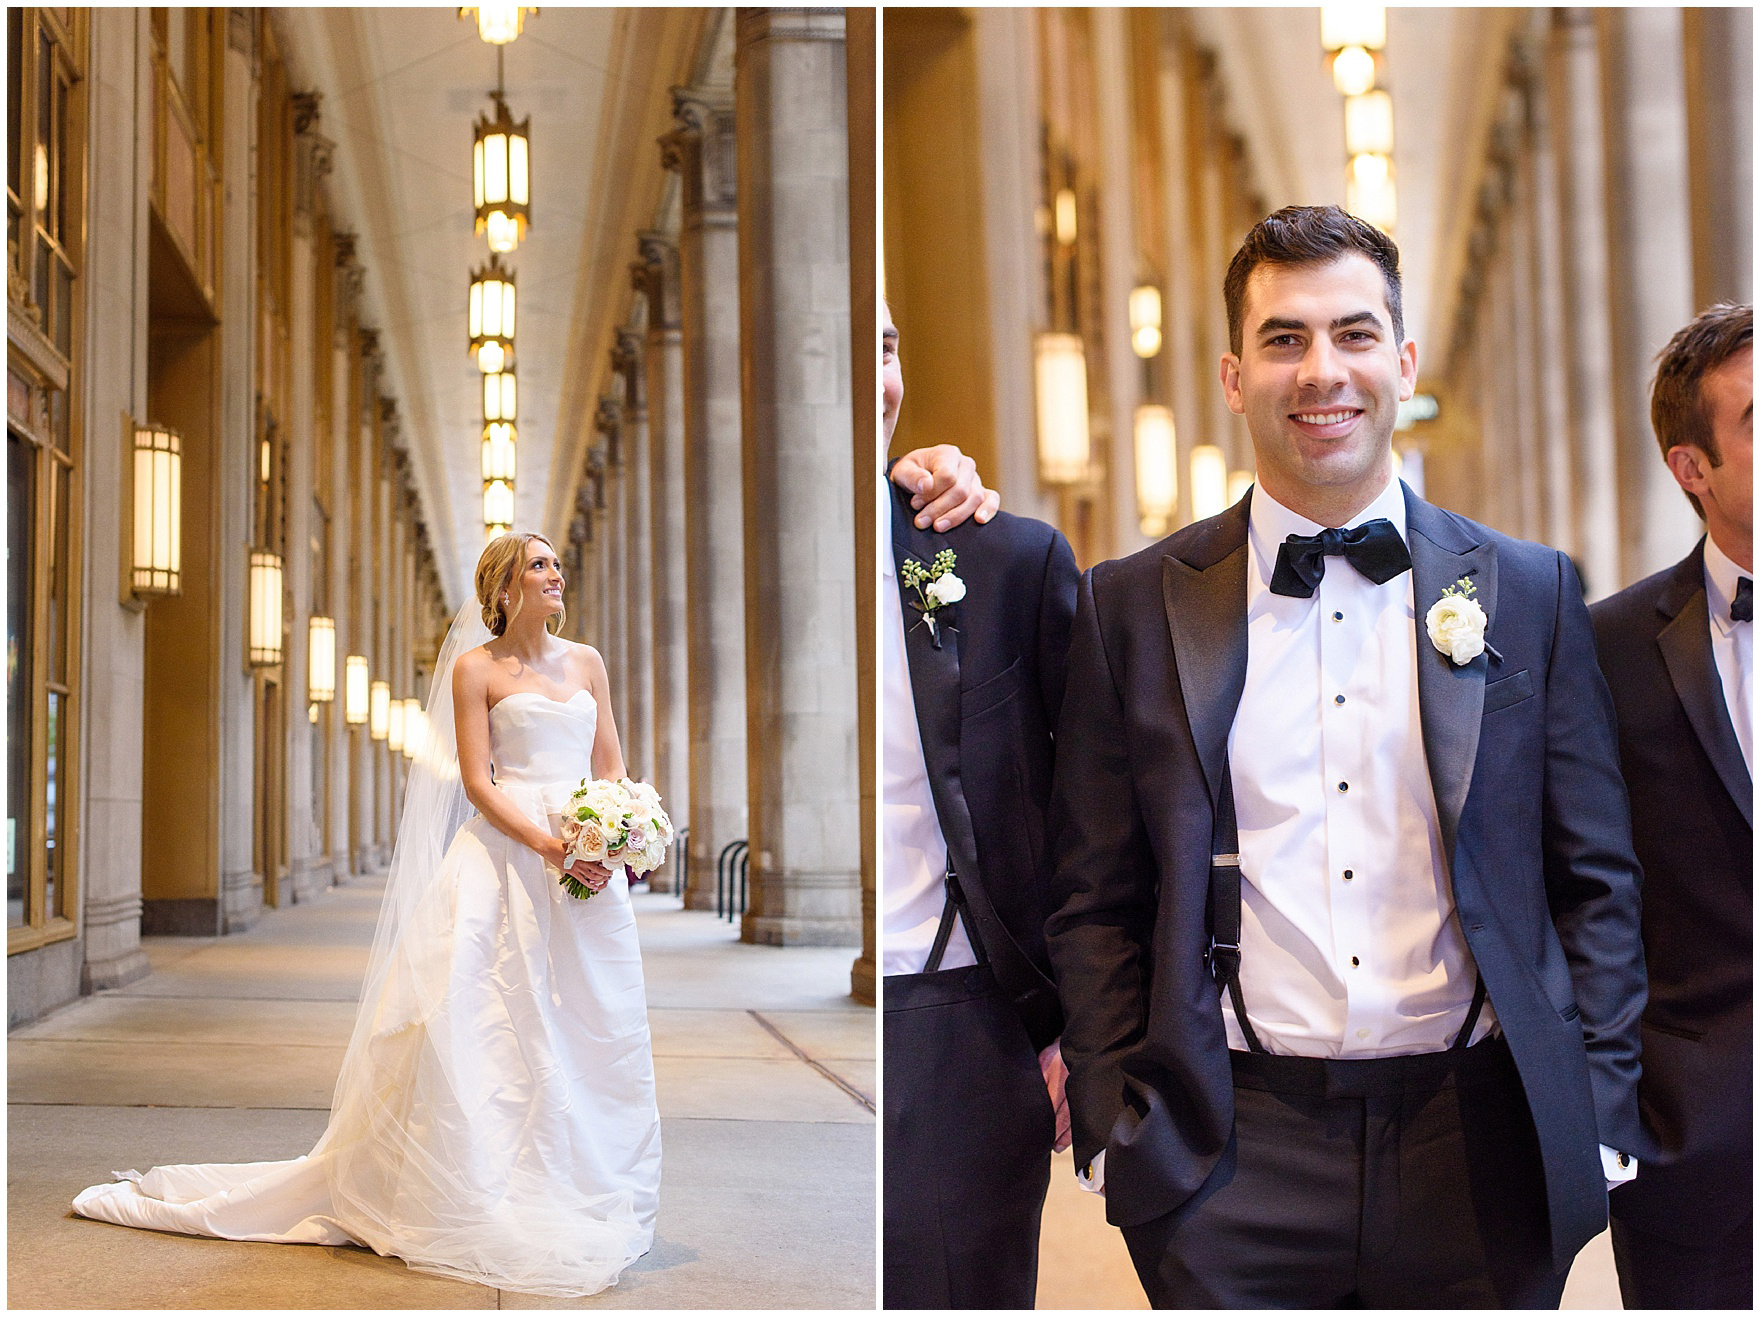 The bride and groom pose for photos at the opera house during a St. Clement Germania Place Chicago wedding.